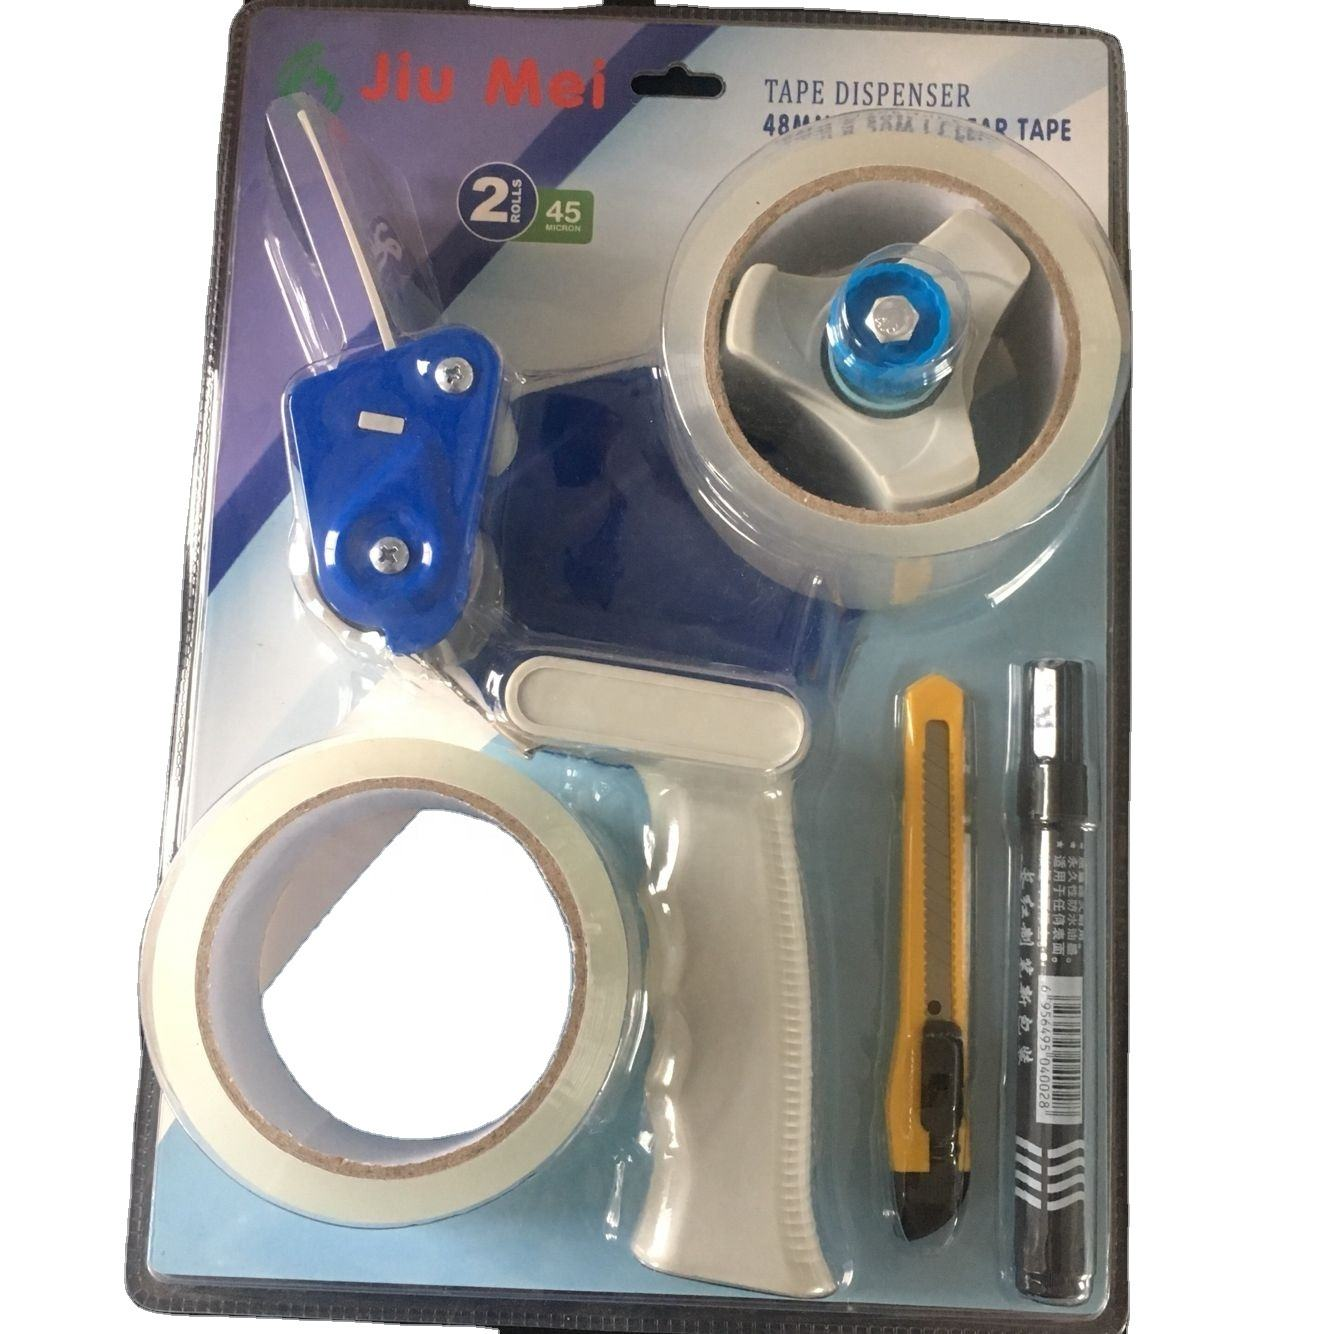 Tape dispenser gun standard handheld dispenser with packing roll included for box sealing and knives and pen